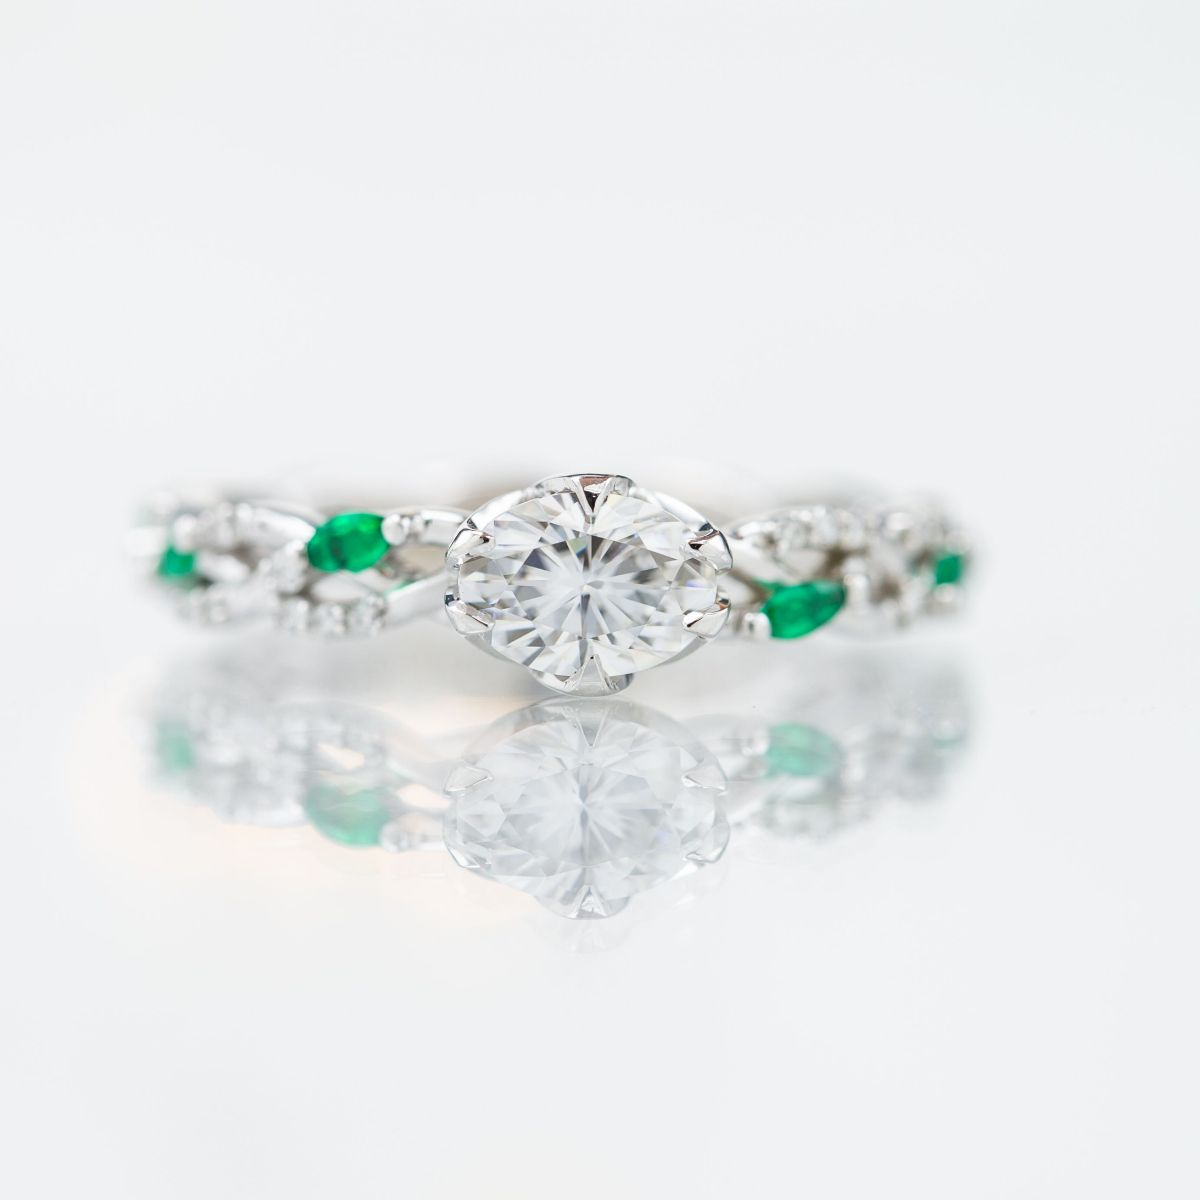 oval moissanite with emerald accents